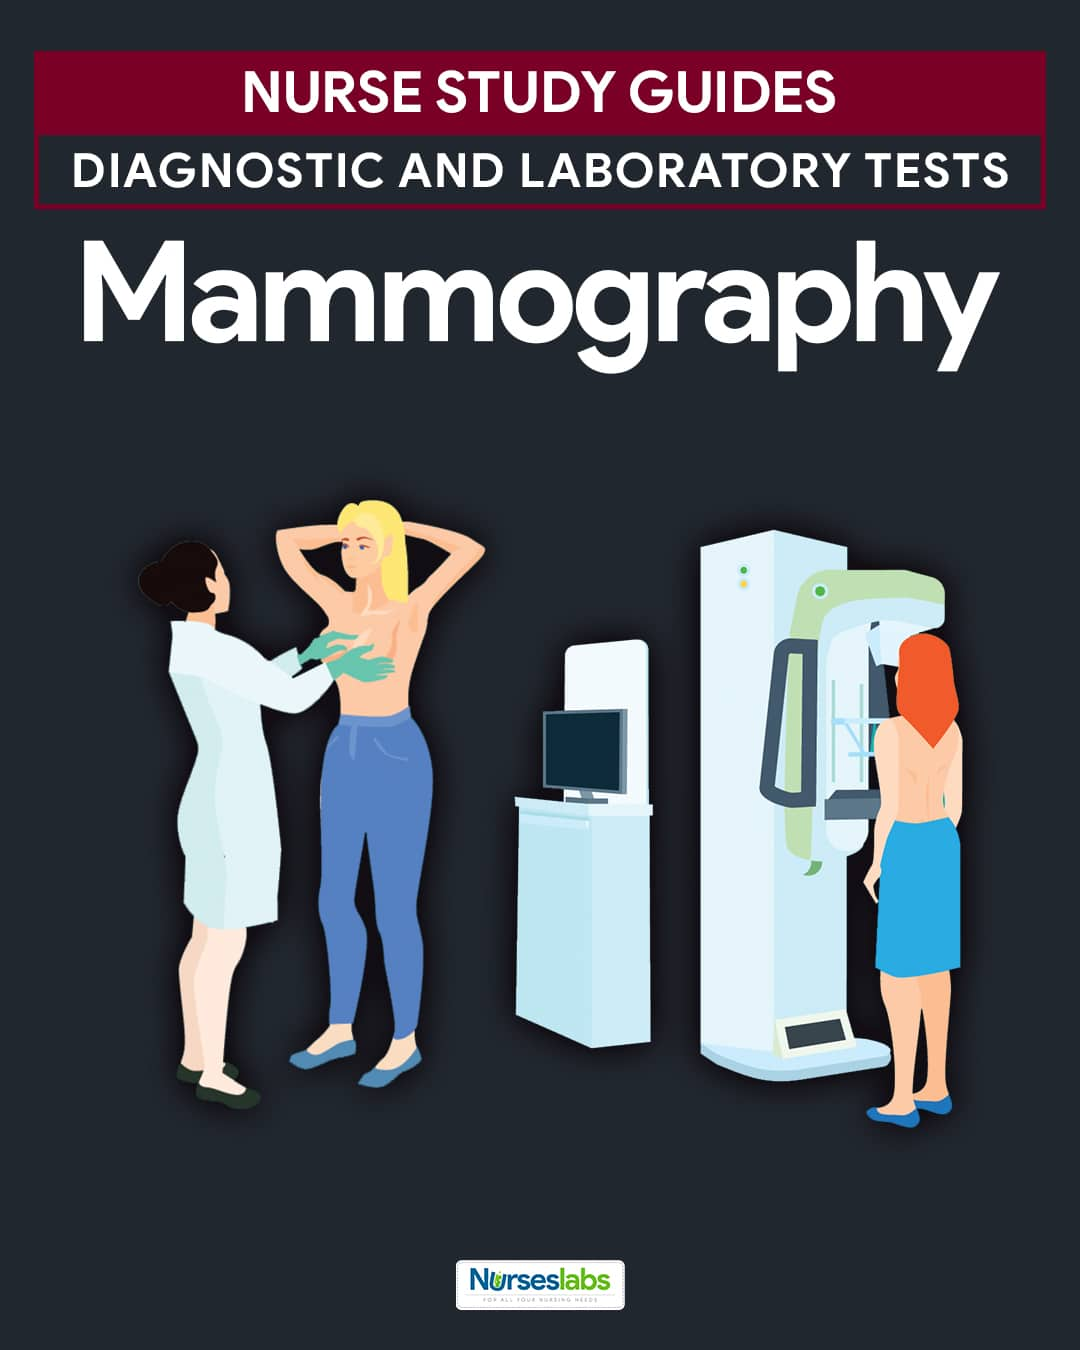 Mammography and Mammogram Nursing Diagnostics and ResponsibilitiesMammography and Mammogram Nursing Diagnostics and Responsibilities